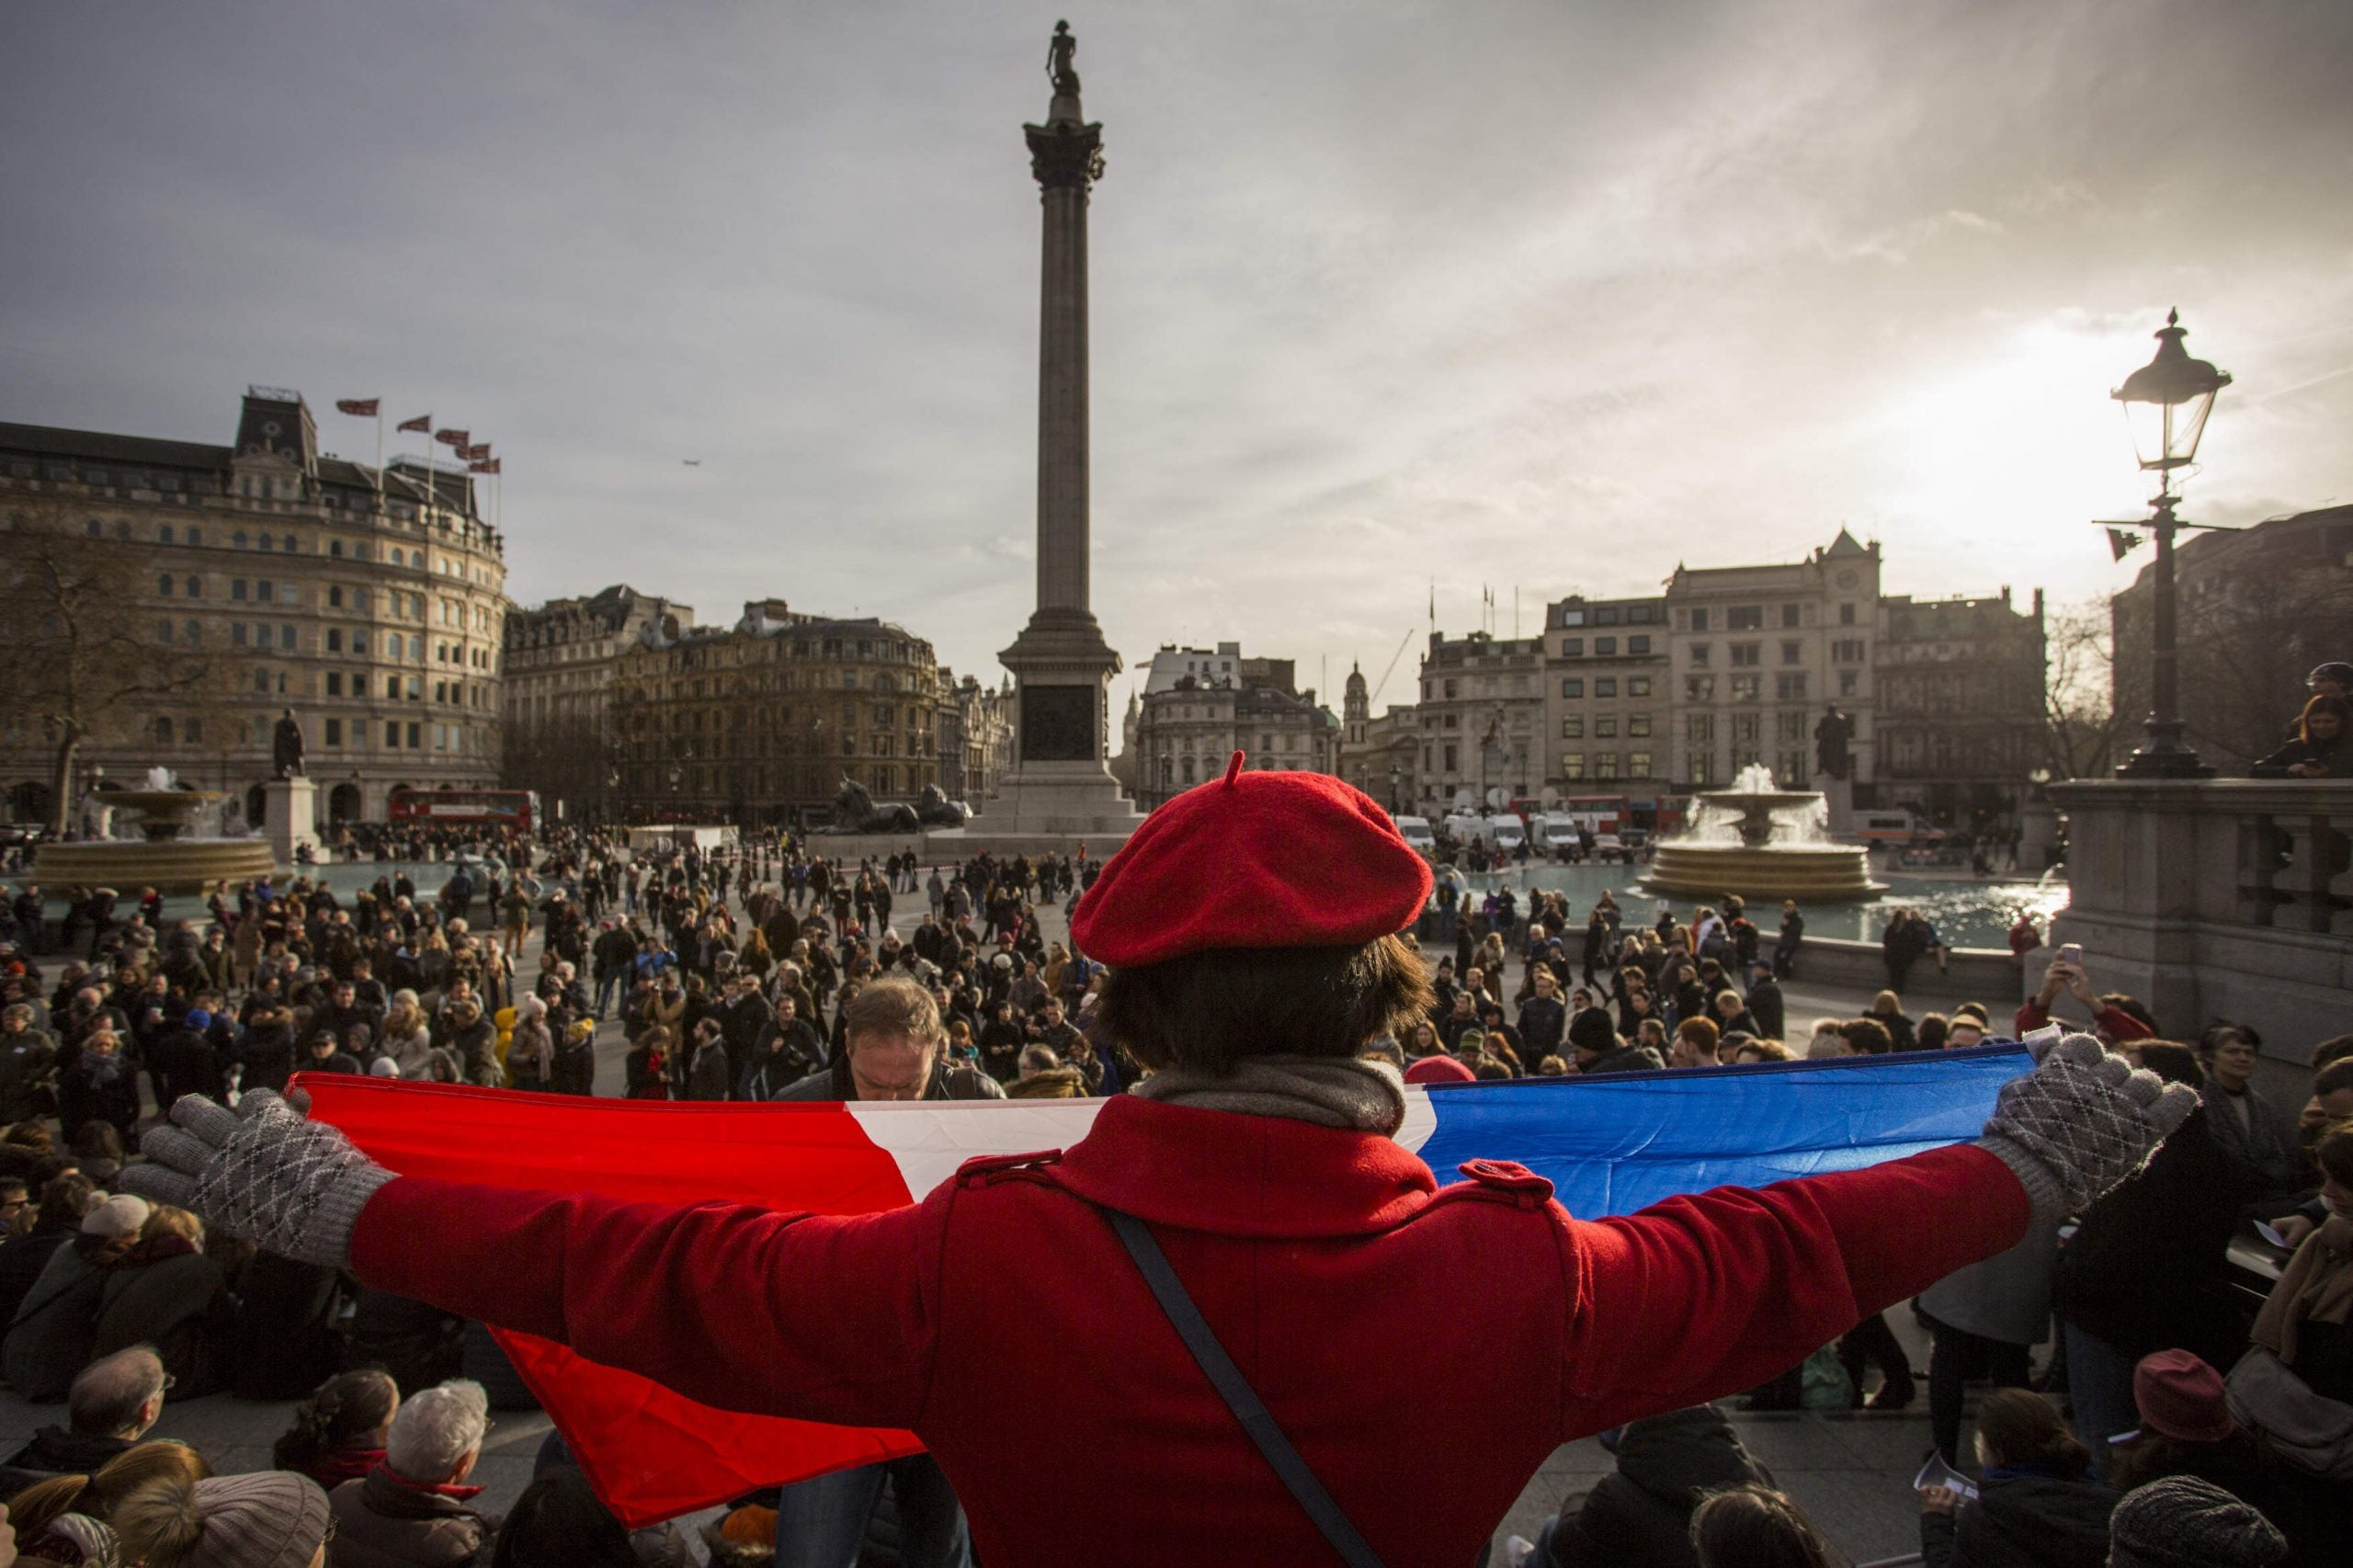 The horrors in Paris, flowers from Boris, and the spirit of Charlie Hebdo in London